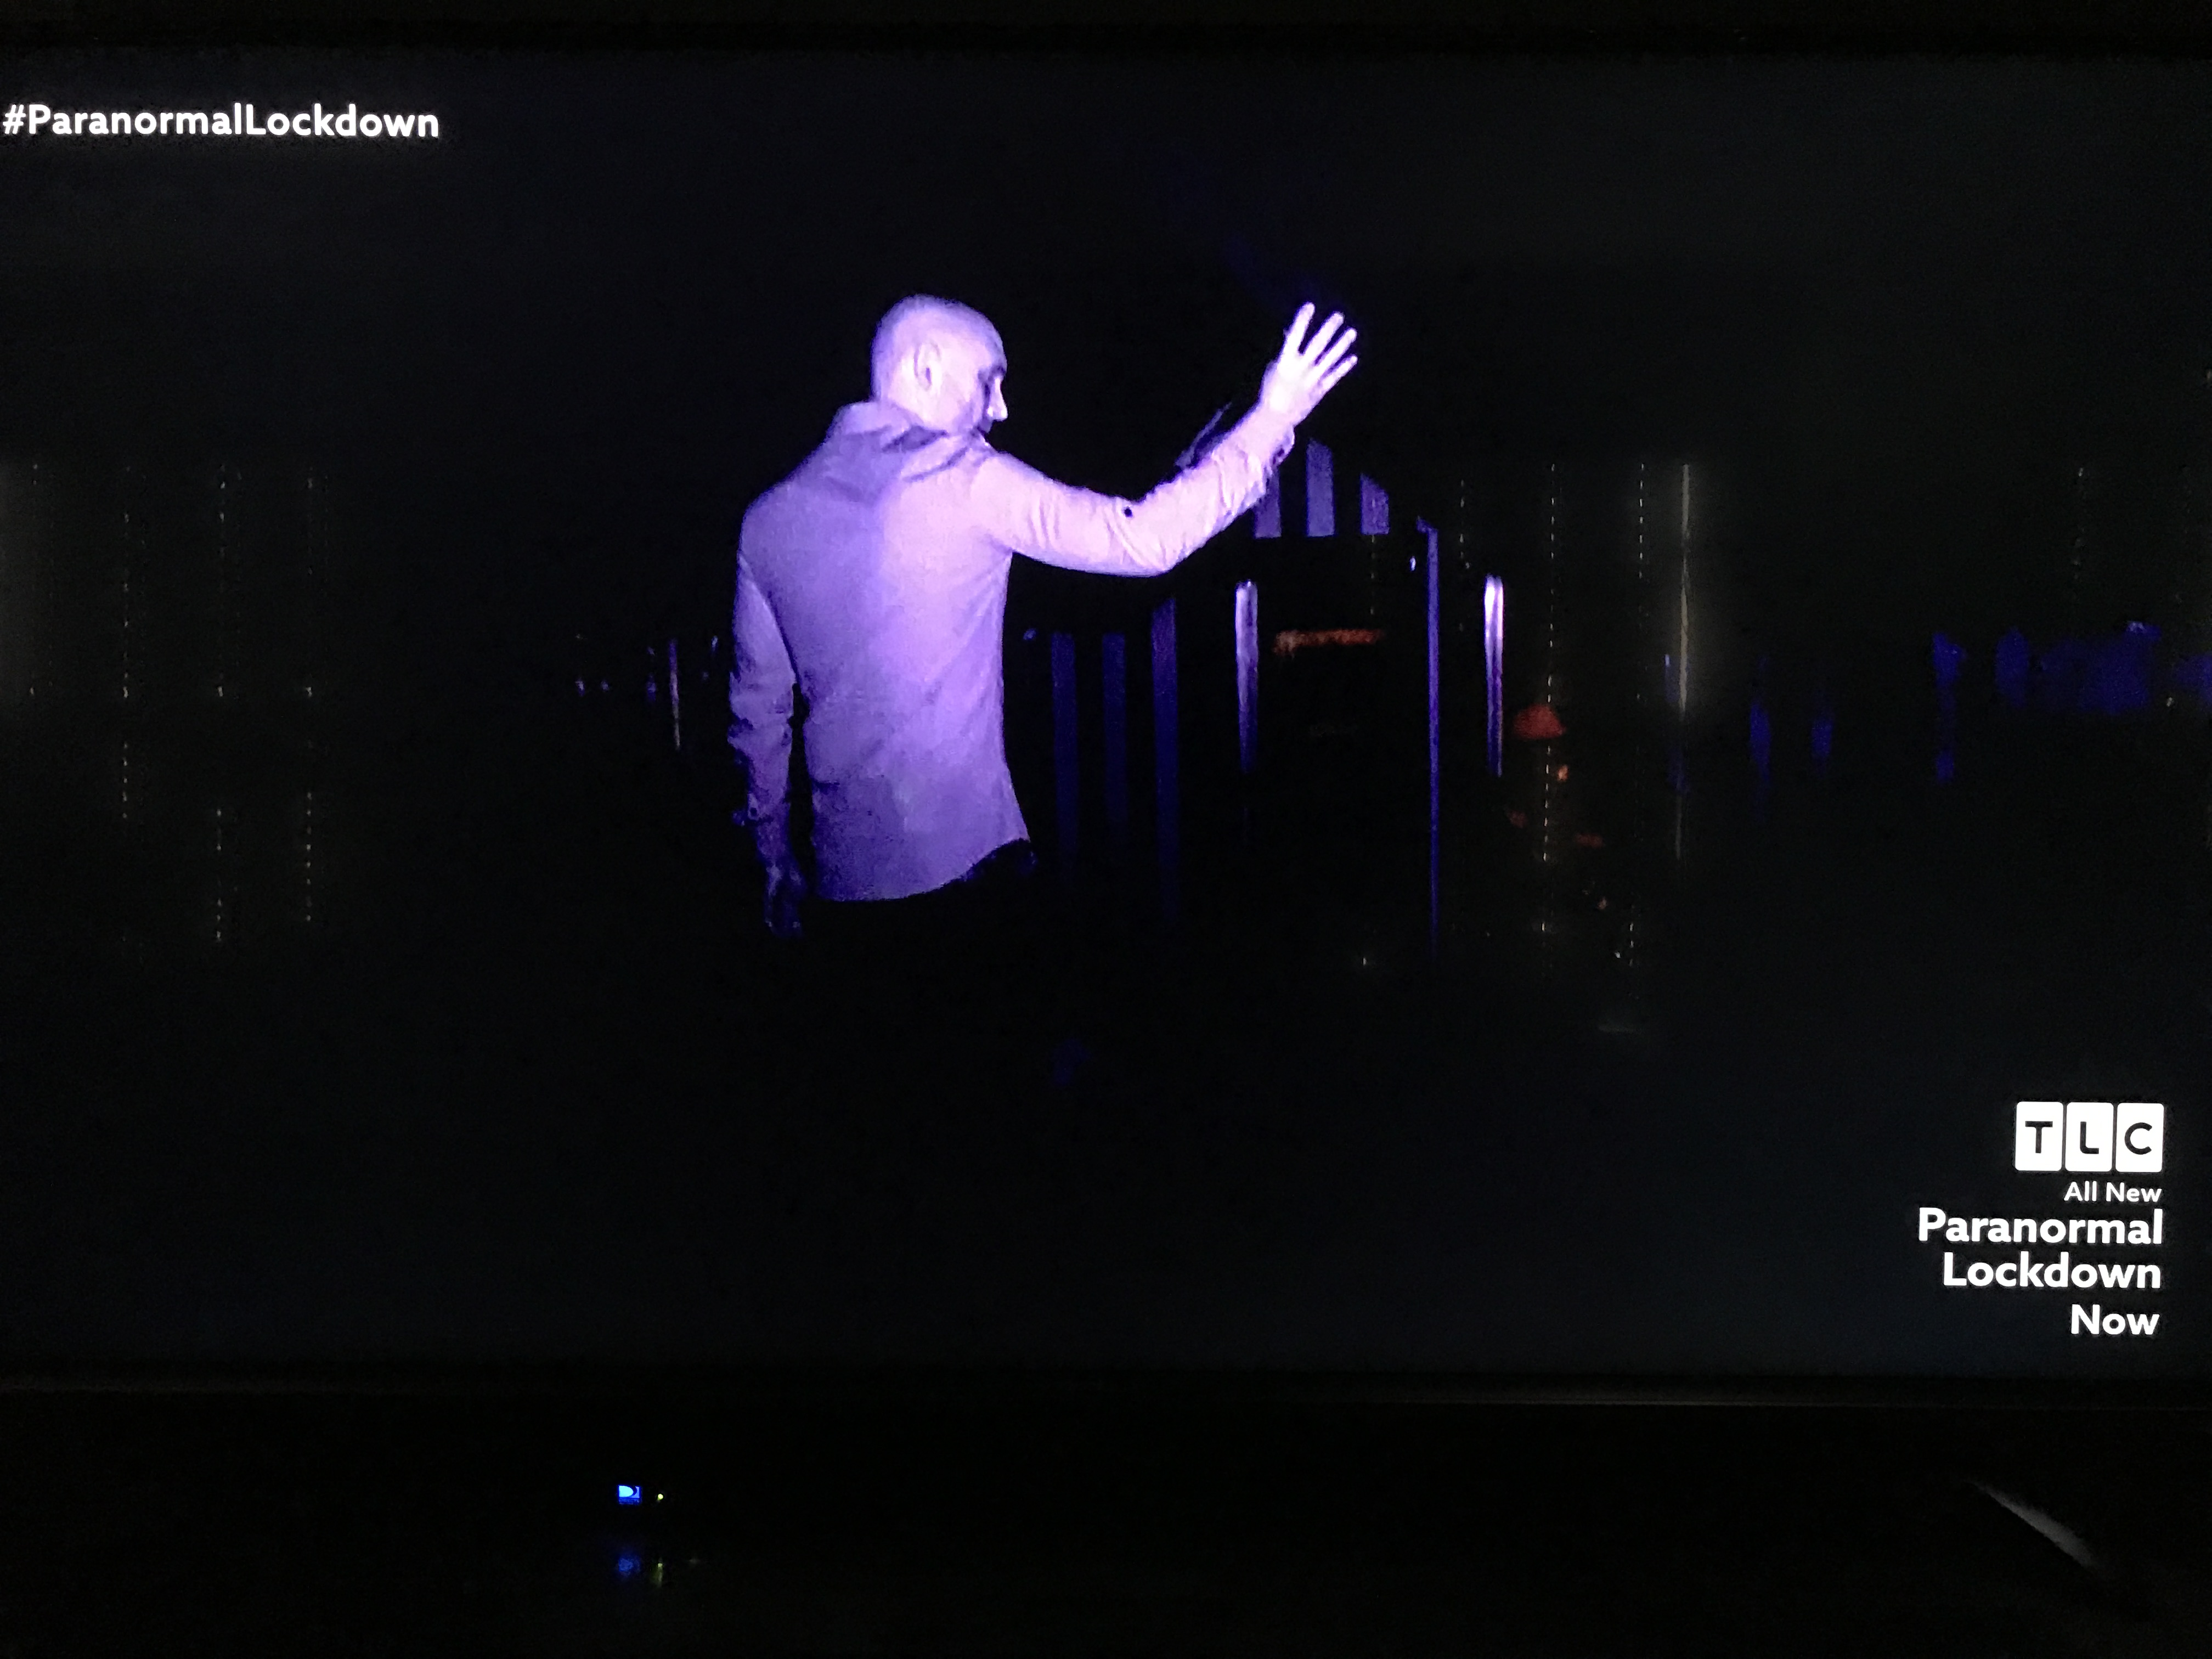 My Experience on Paranormal Lockdown with my Wonder Box - The